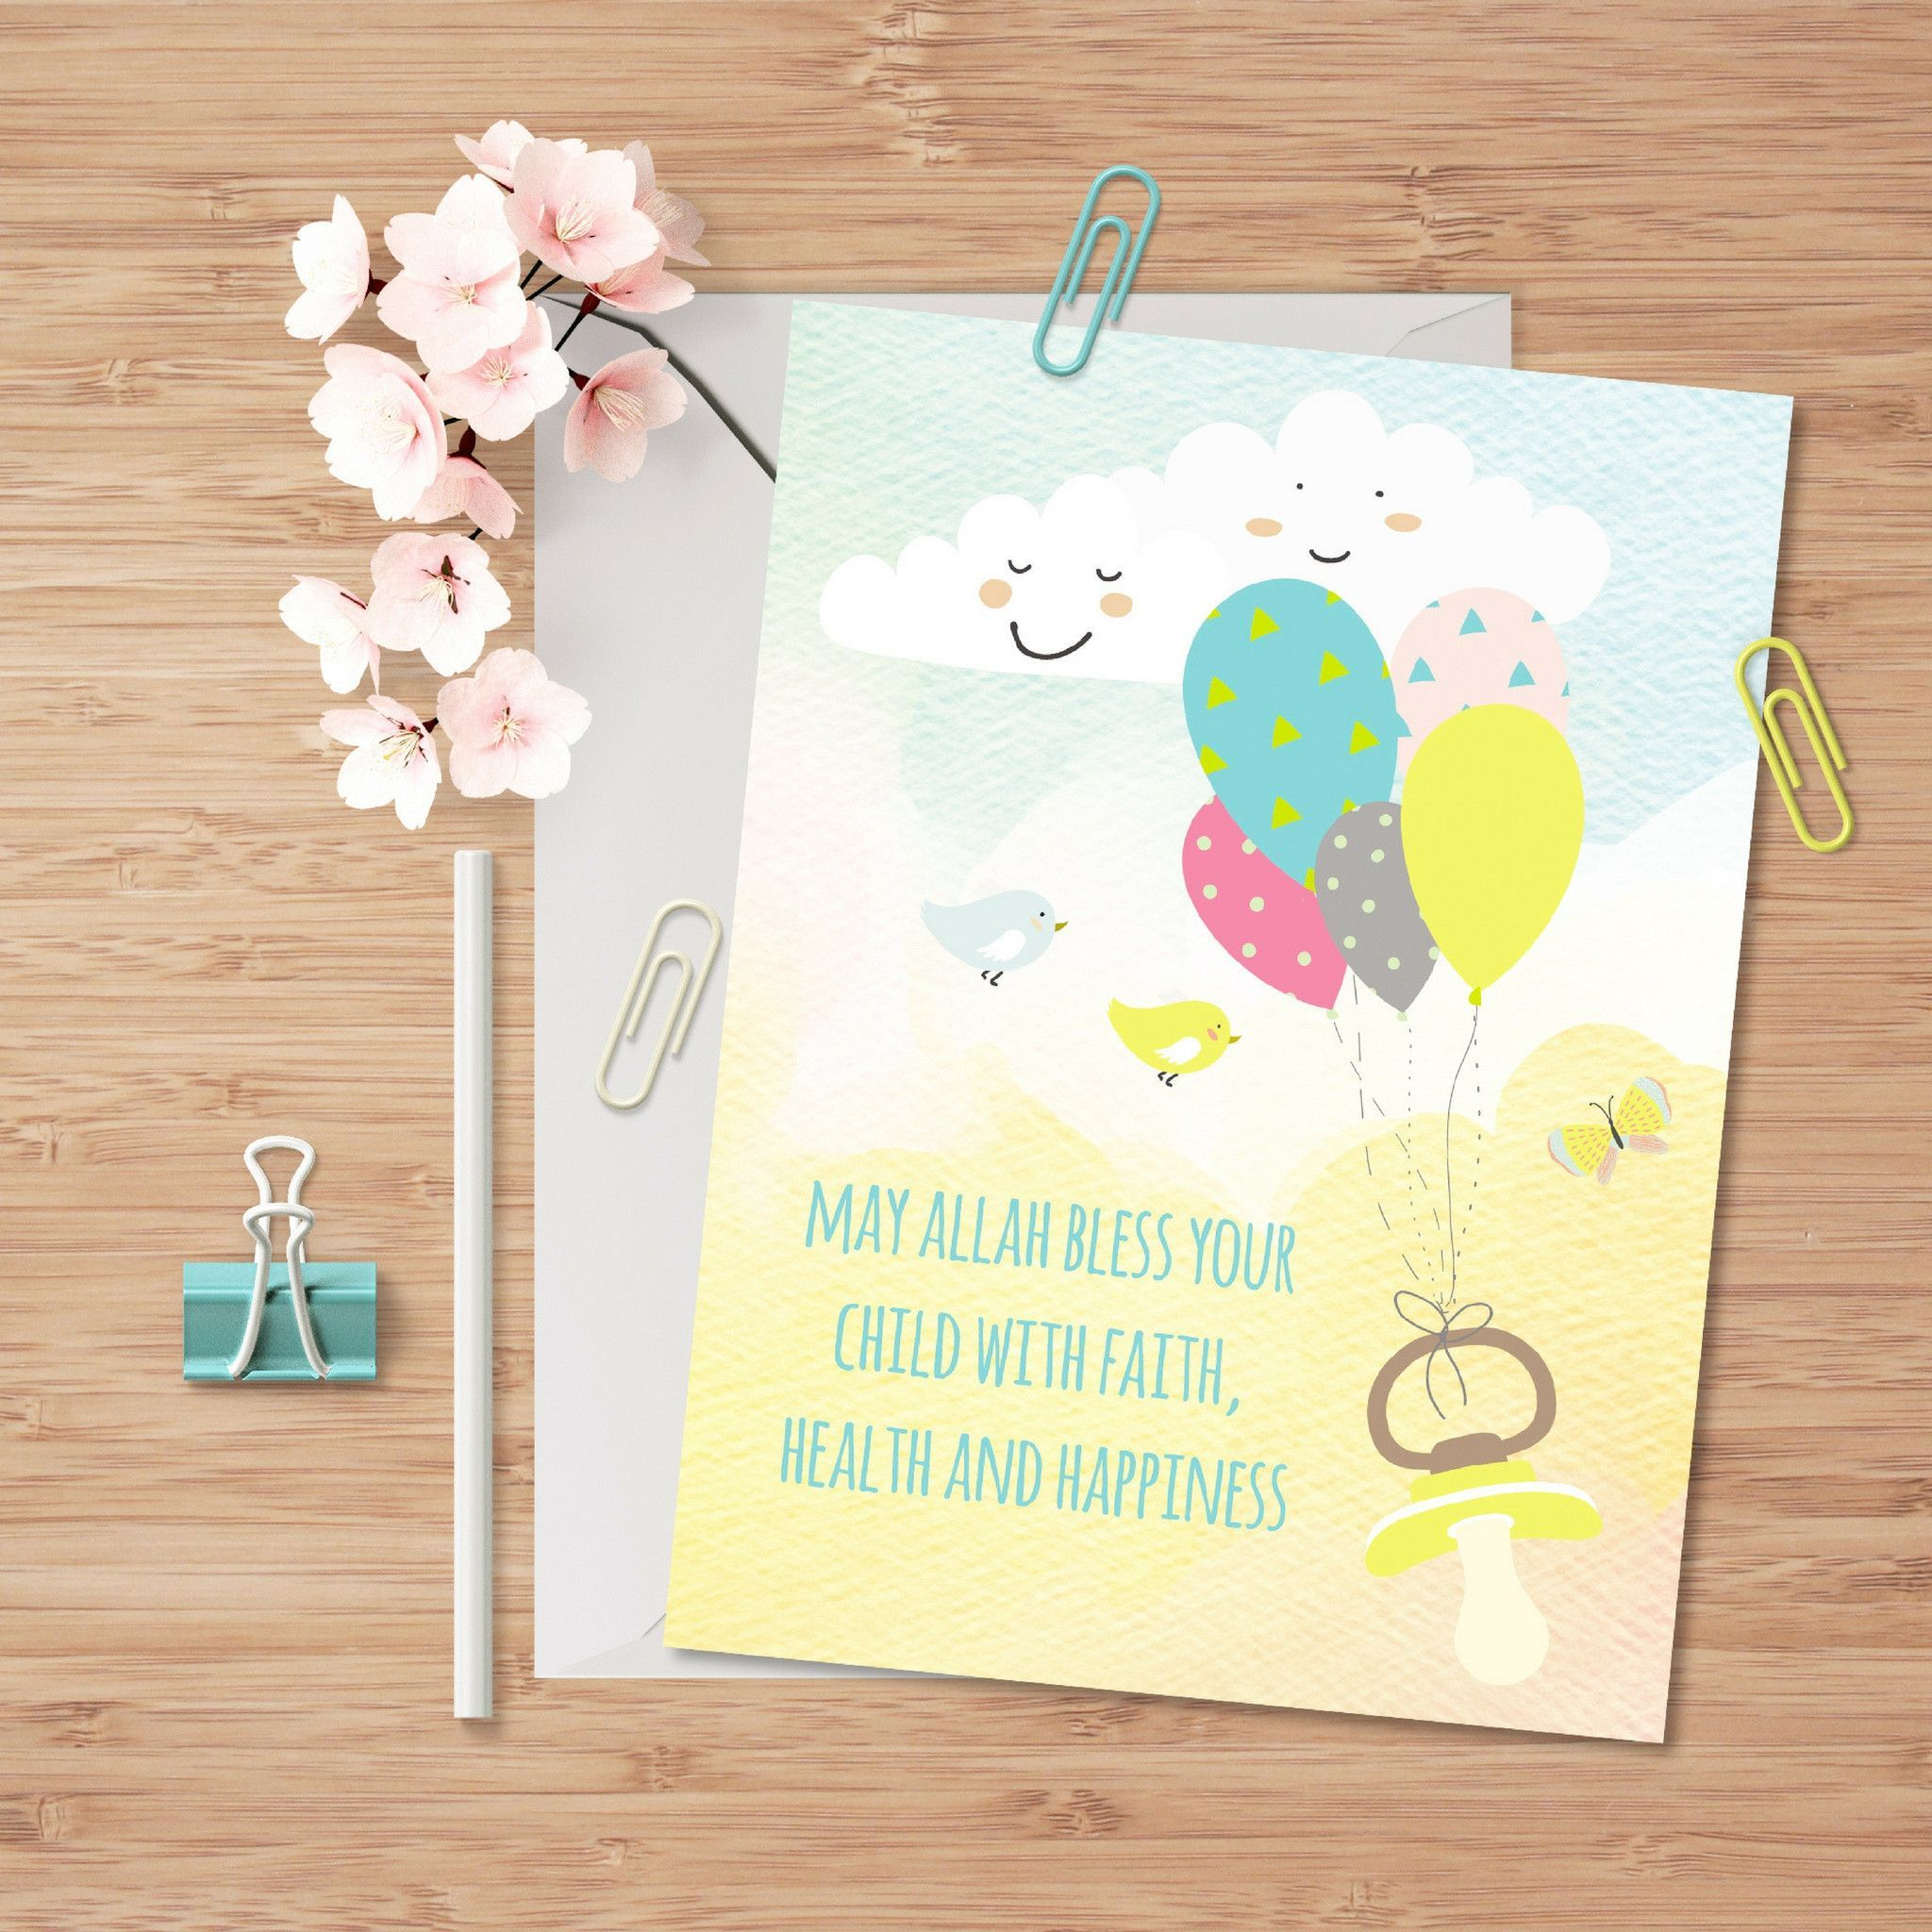 May allah bless your child greeting card for muslim babies muslim shop islamic greeting cards for musilm parents to congratulate them for new baby find all islamic occasion greeting cards from your muslim lifestyle store kristyandbryce Image collections